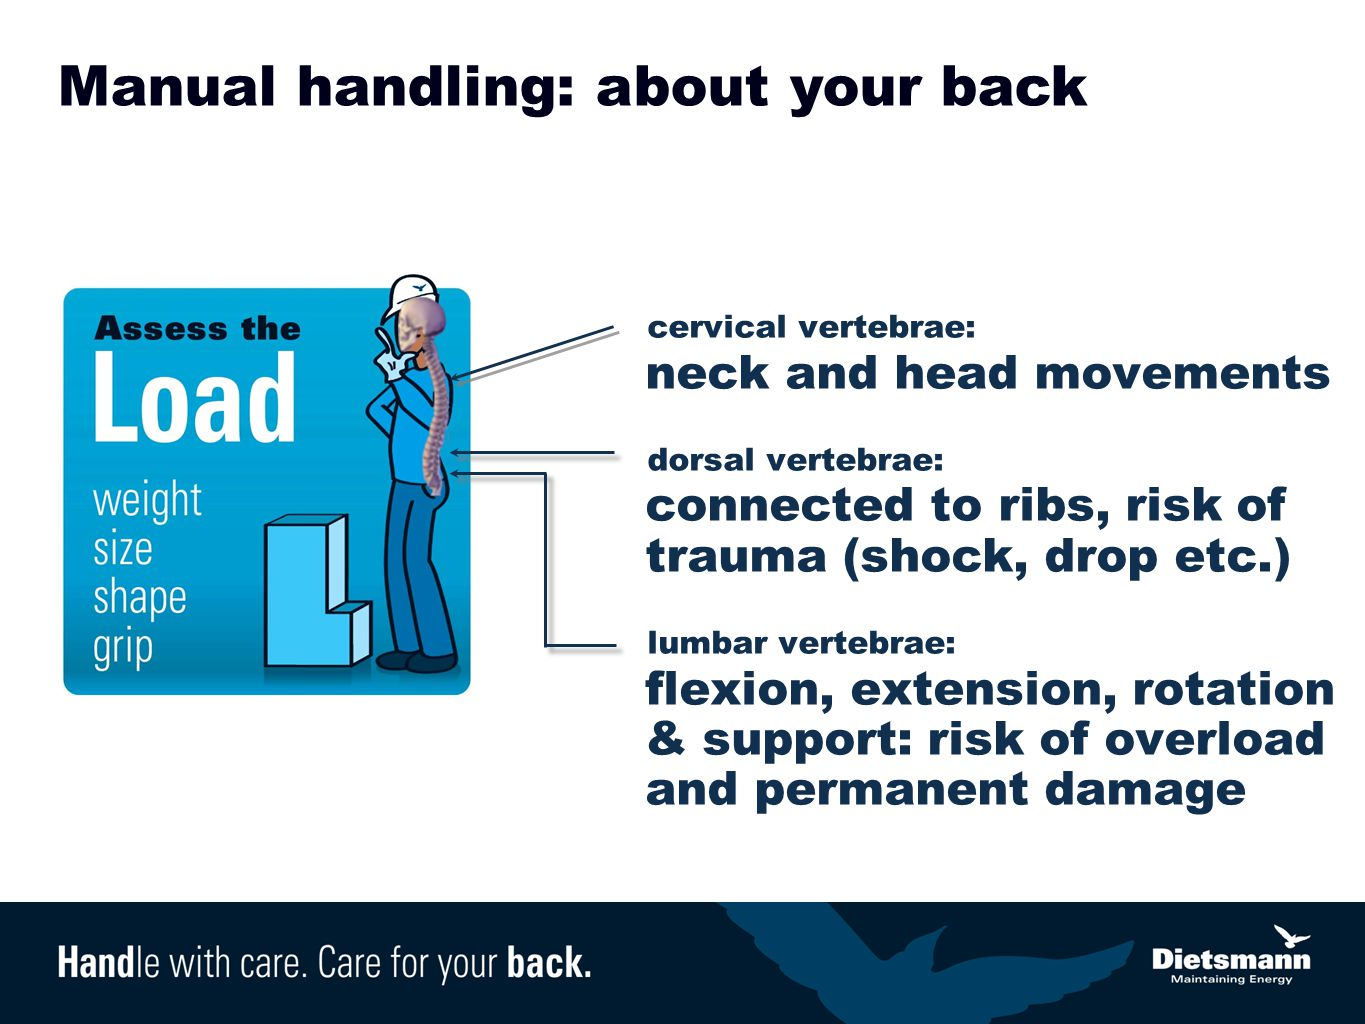 Manual handling: about your back